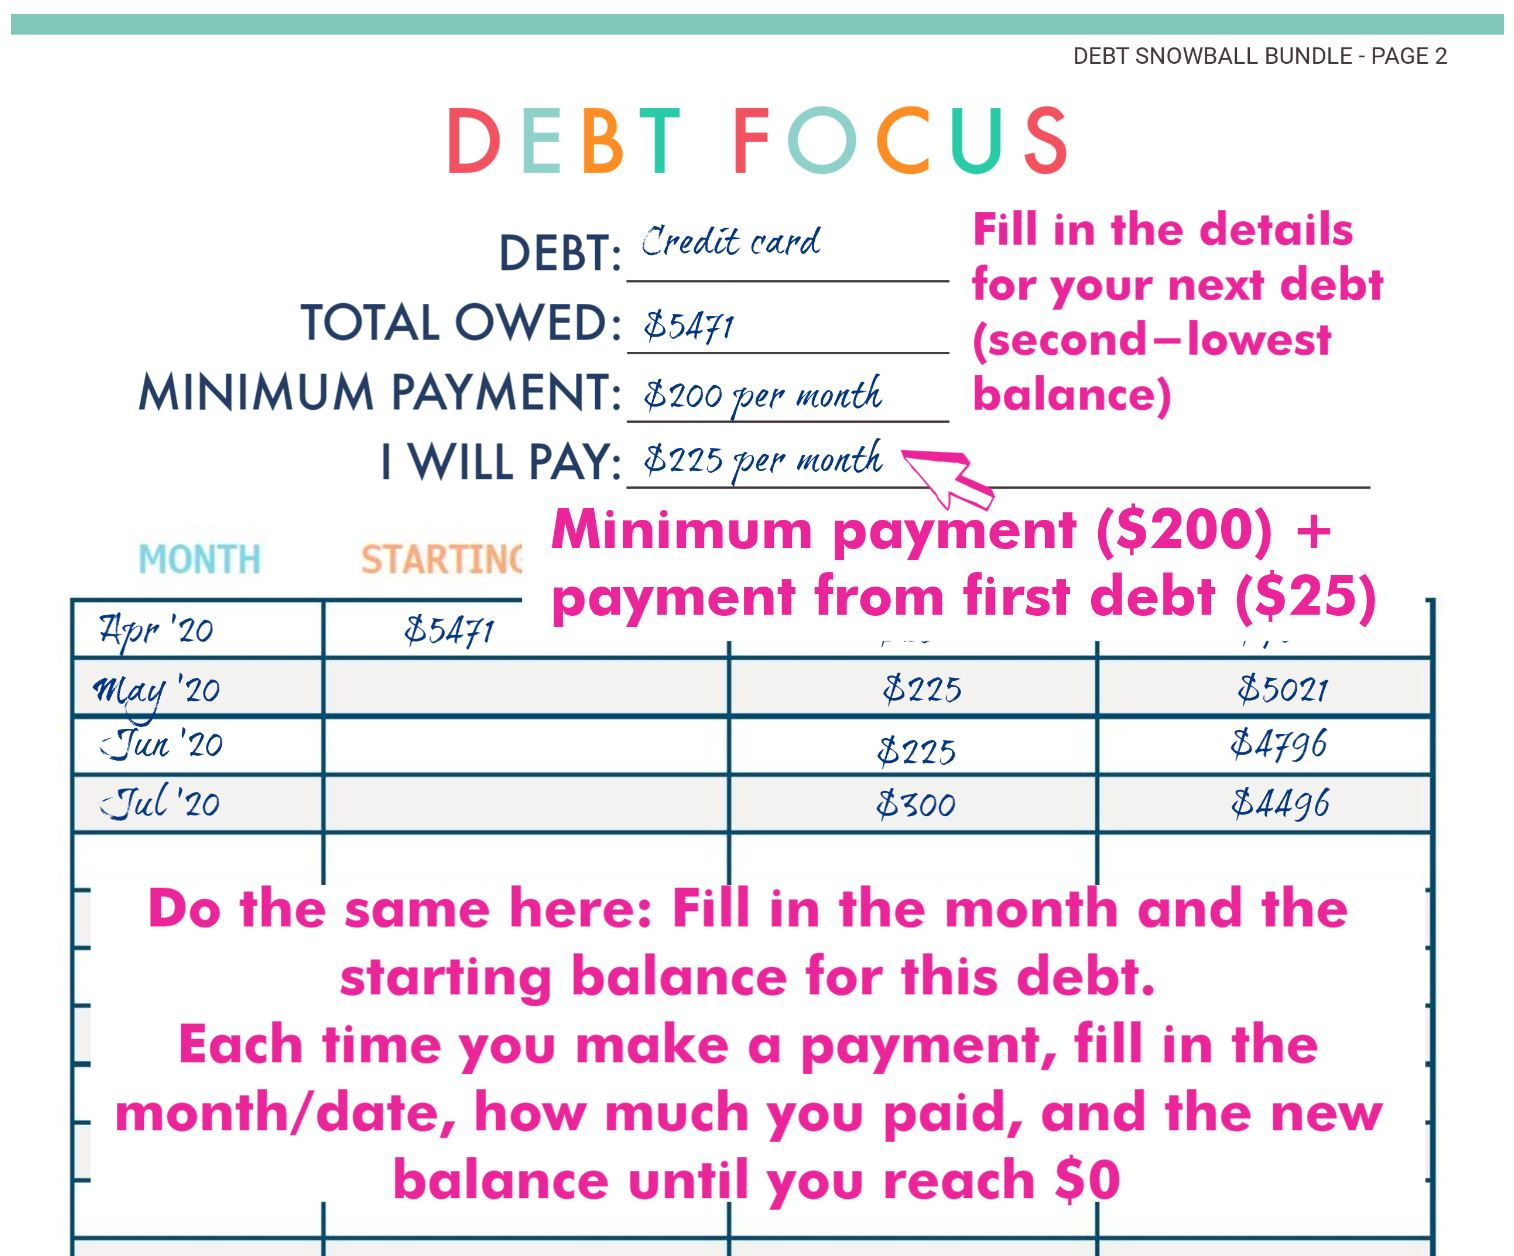 How to payof debt with debt snowball method